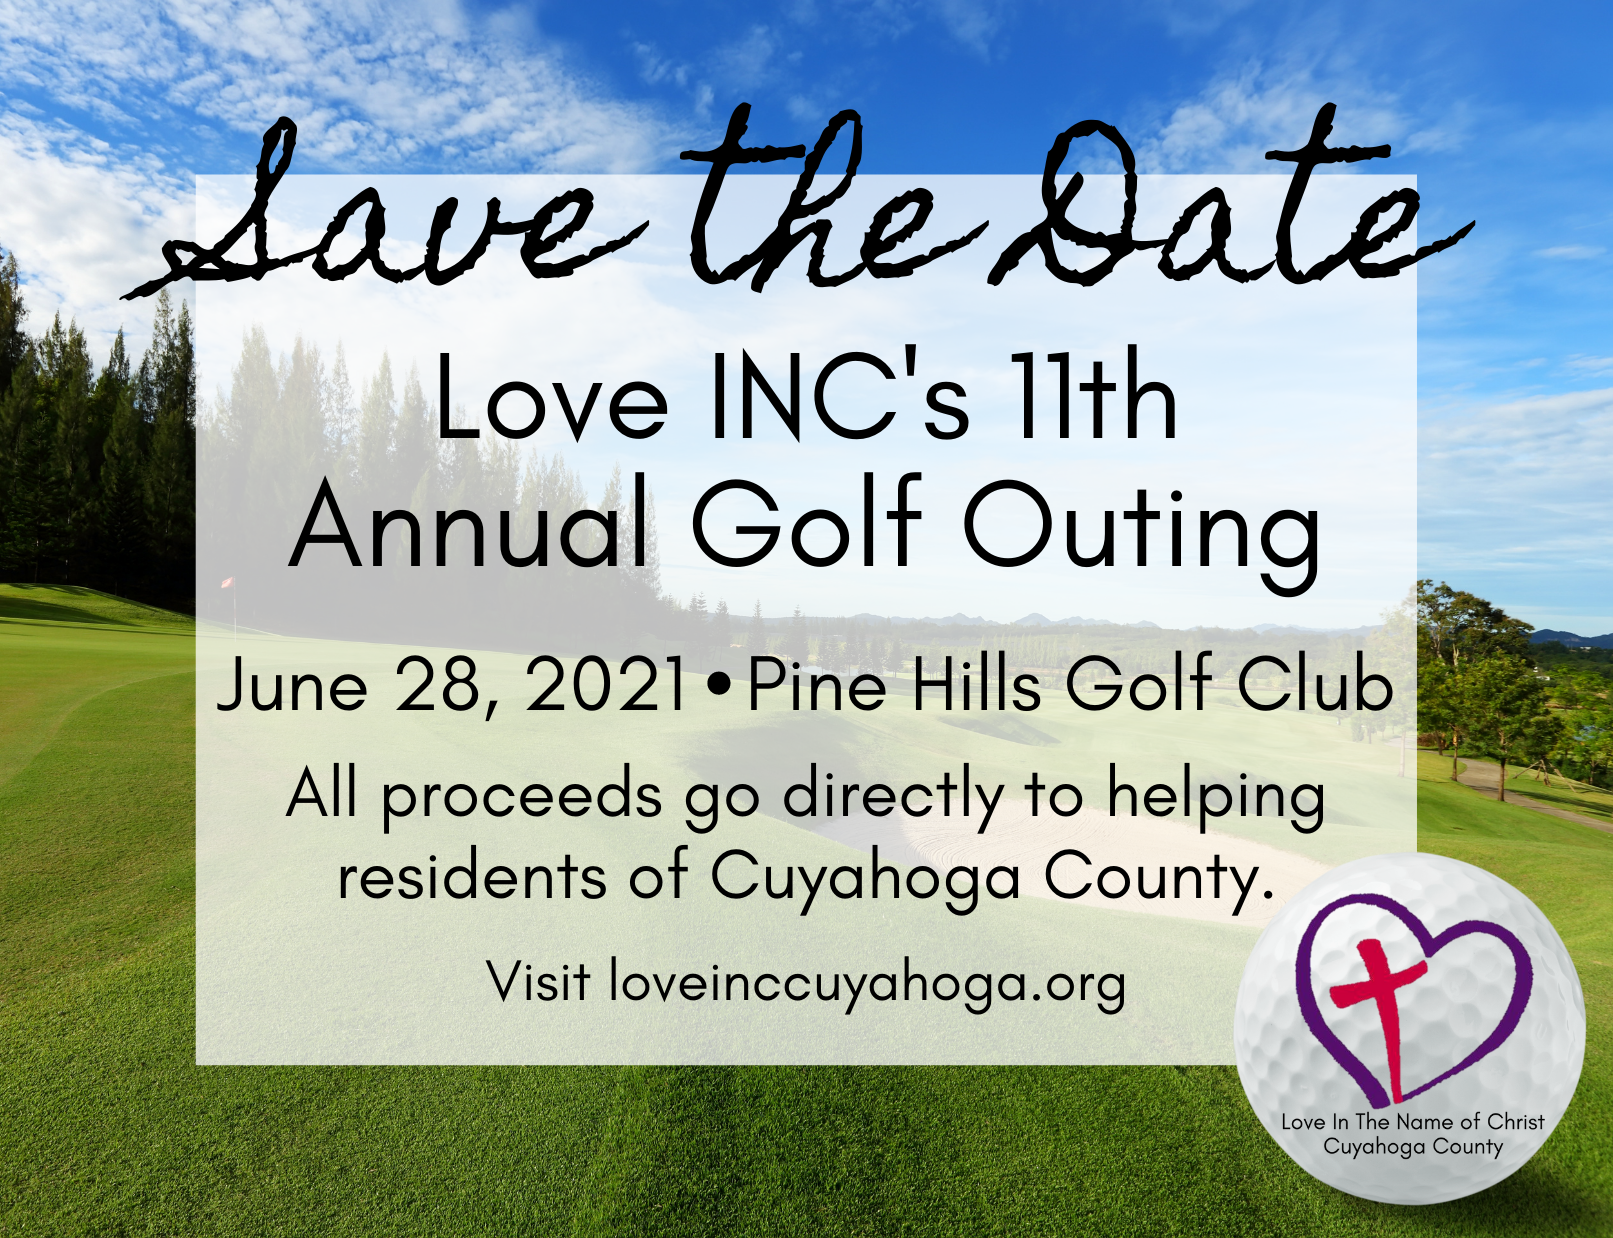 Save the Date. Love INC's 11th Annual Golf Outing. June 28, 2021